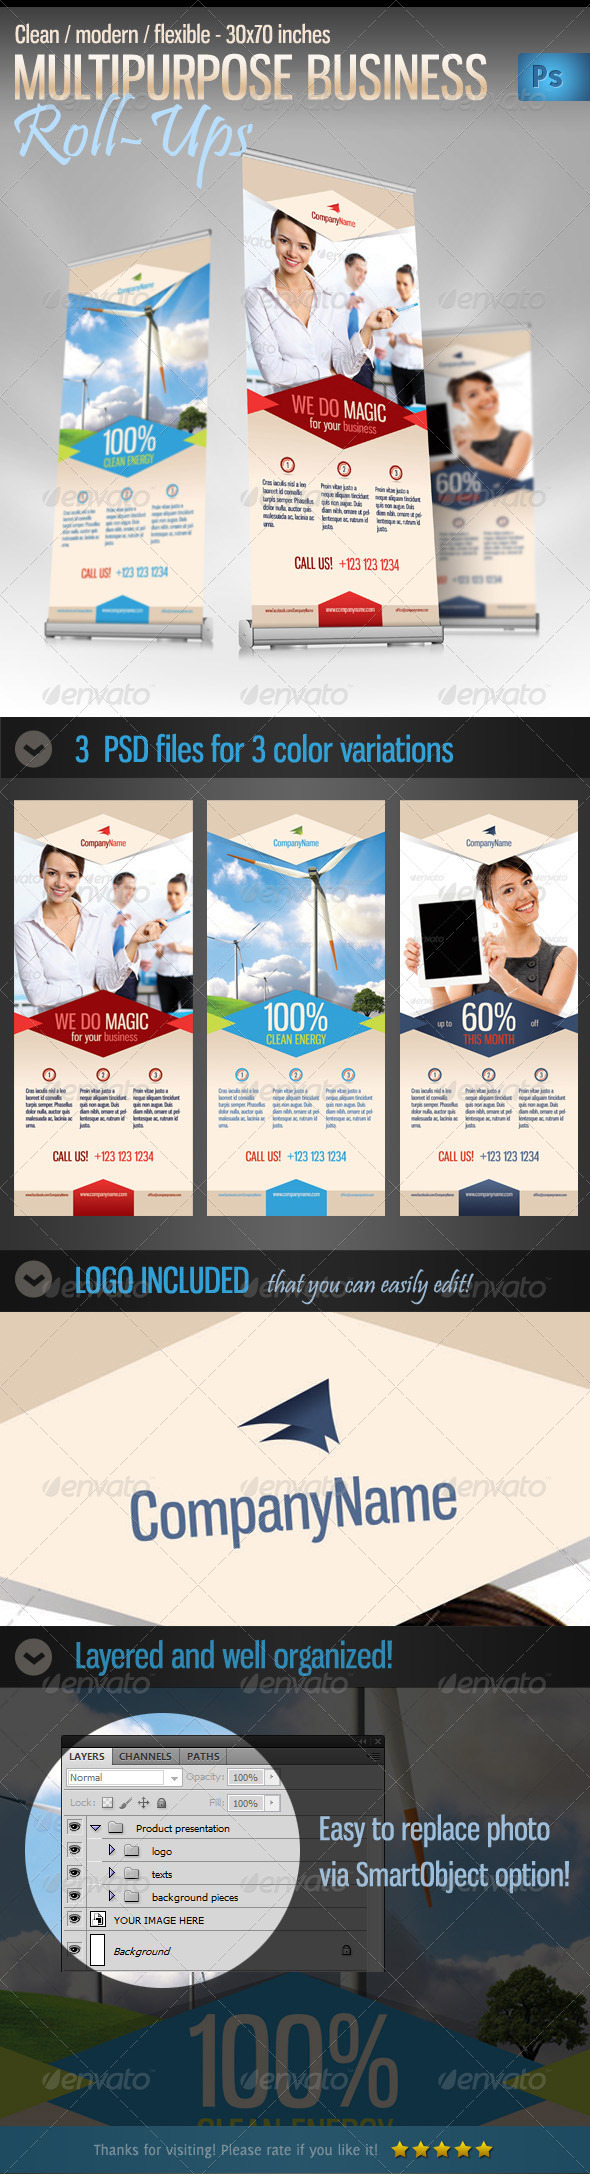 Multipurpose Business / Product Roll-up Banner - Signage Print Templates